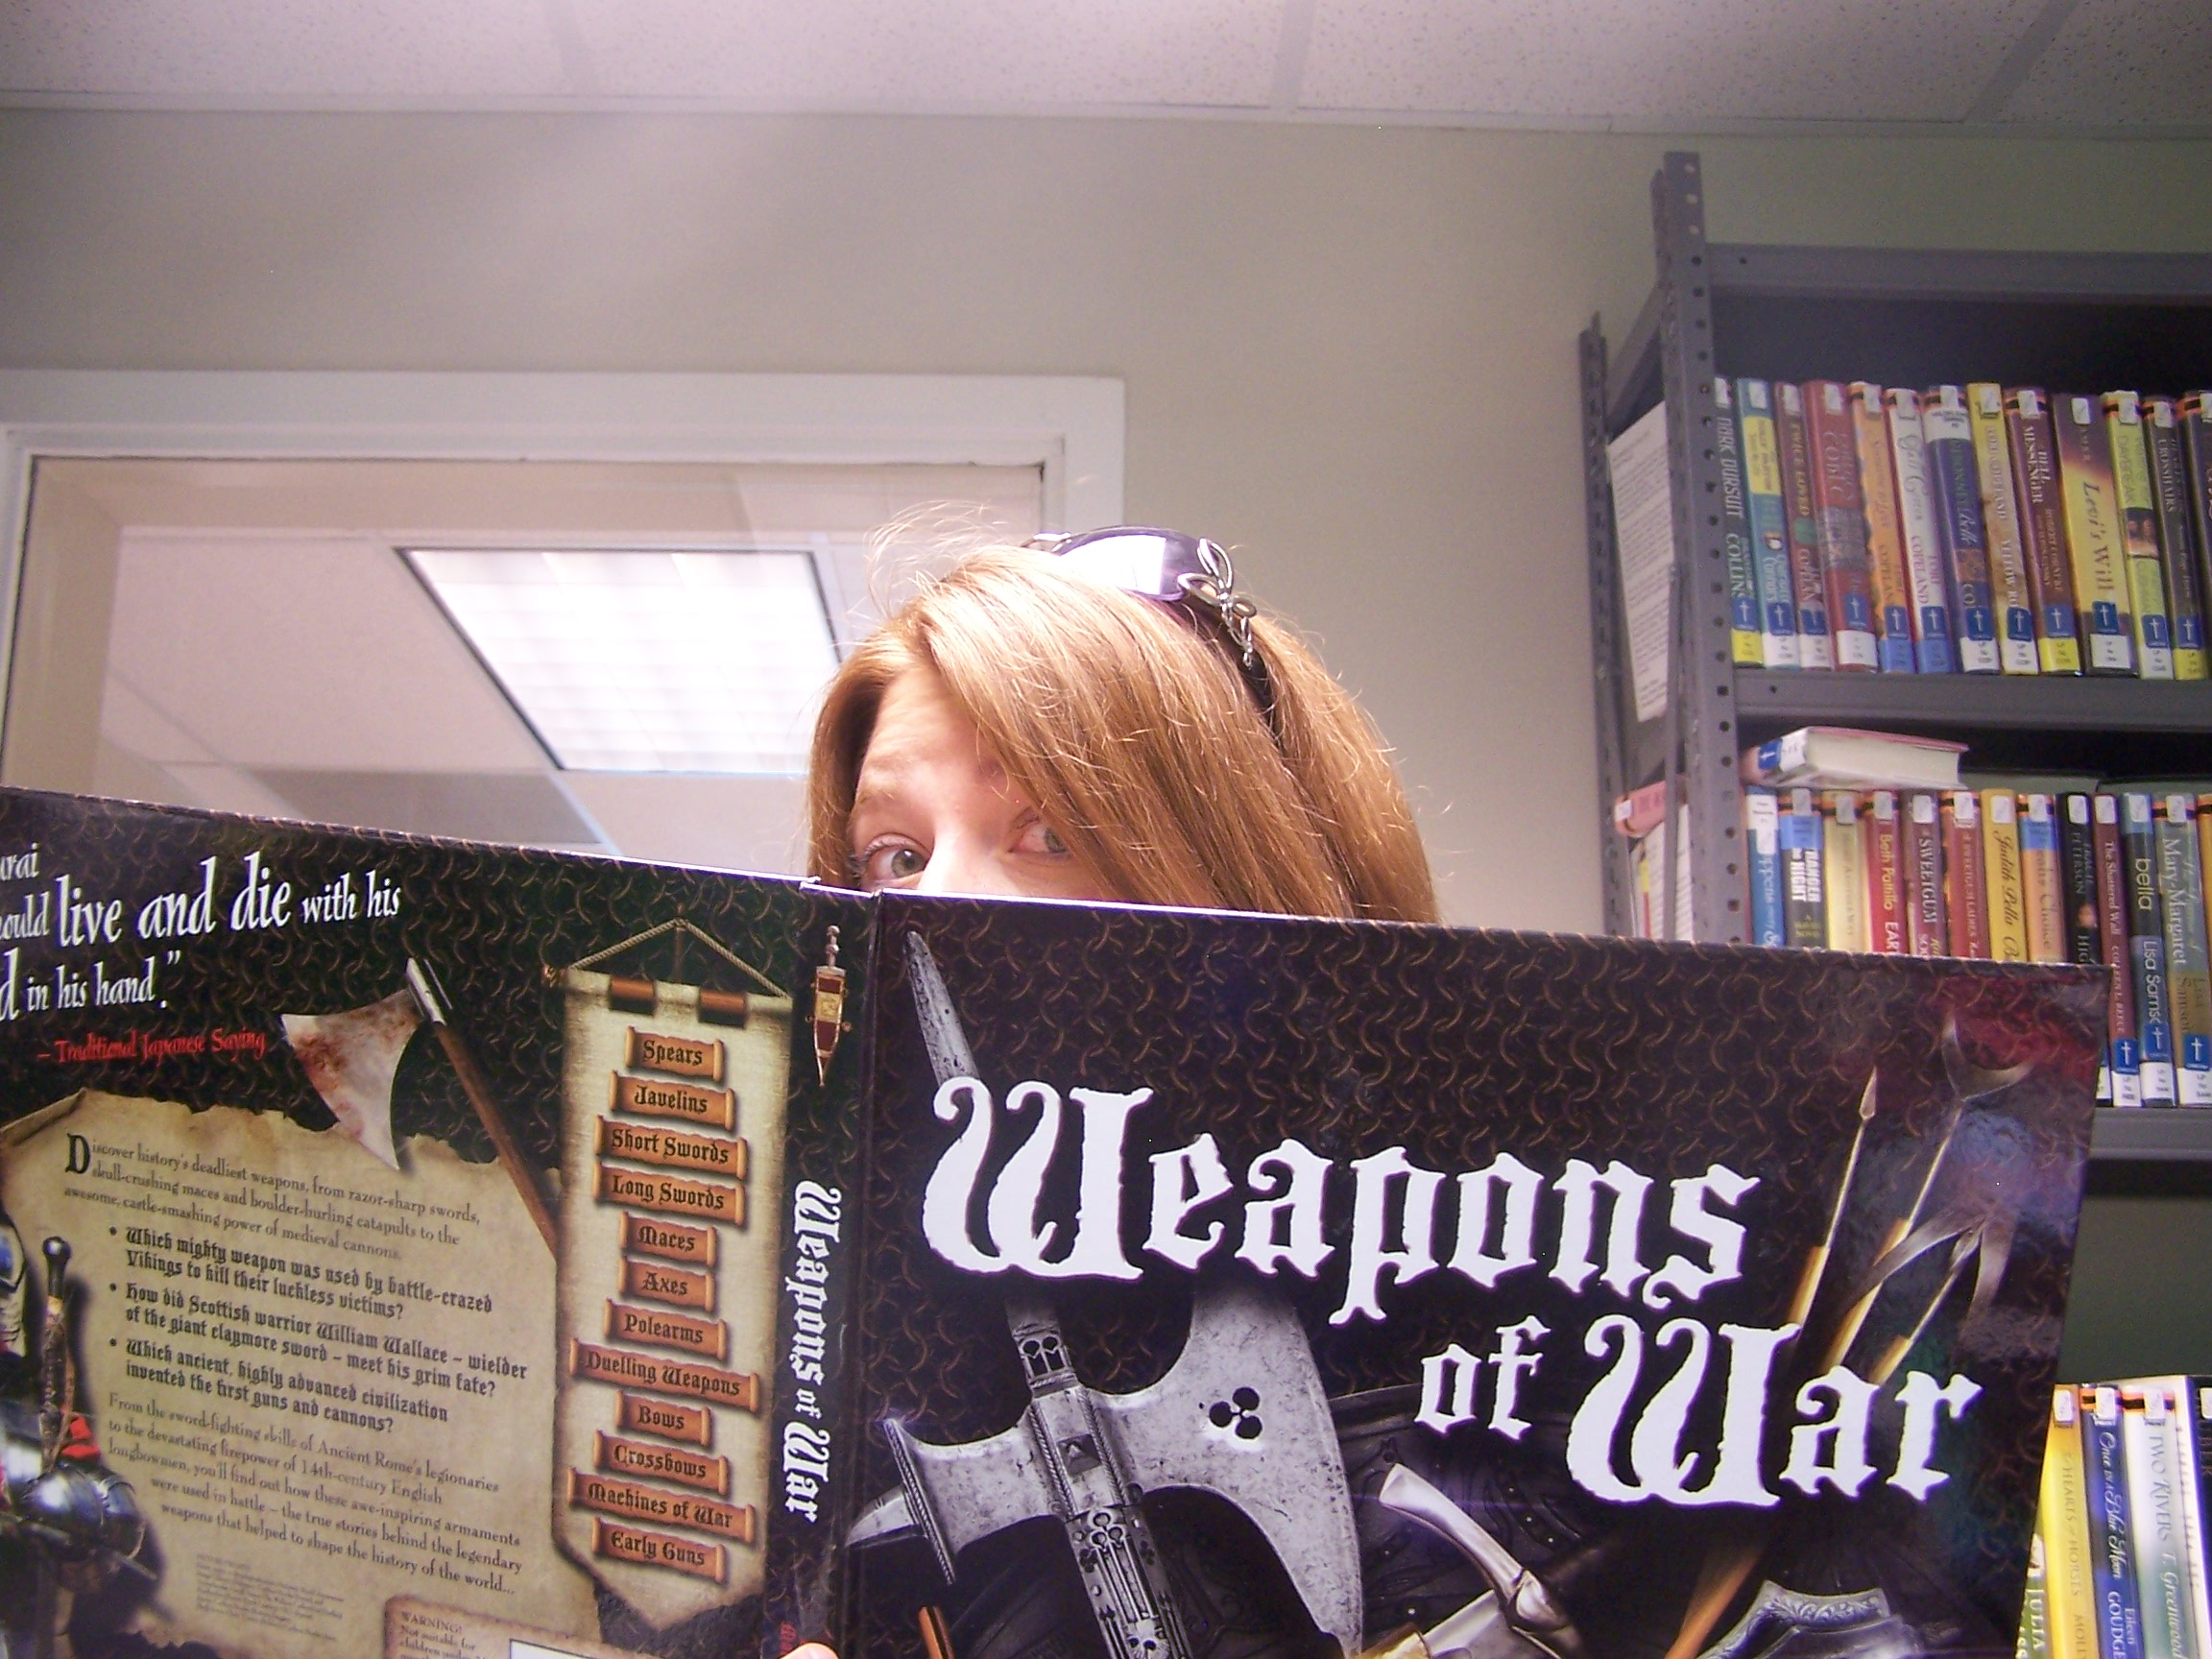 woman peeking out from behind book titled Weapons of War